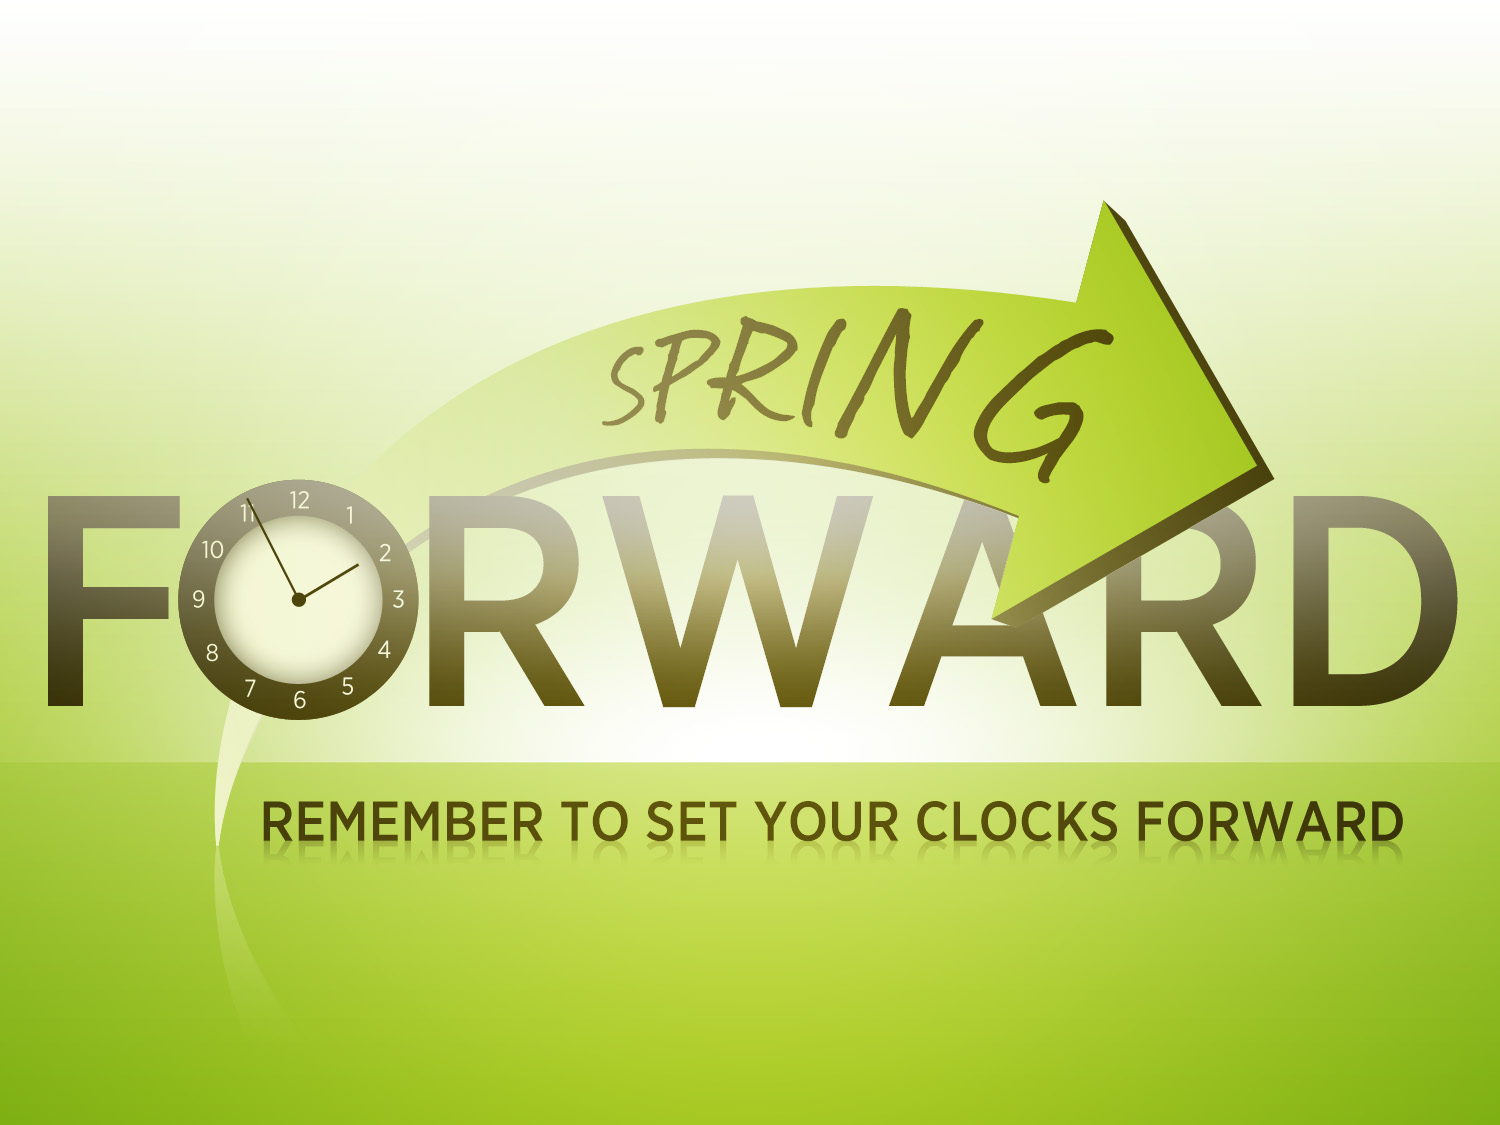 Daylight savings clipart spring forward. Clock viewing daylightsavingsspringforwardclipartspringforwardclockviewingfasbgk